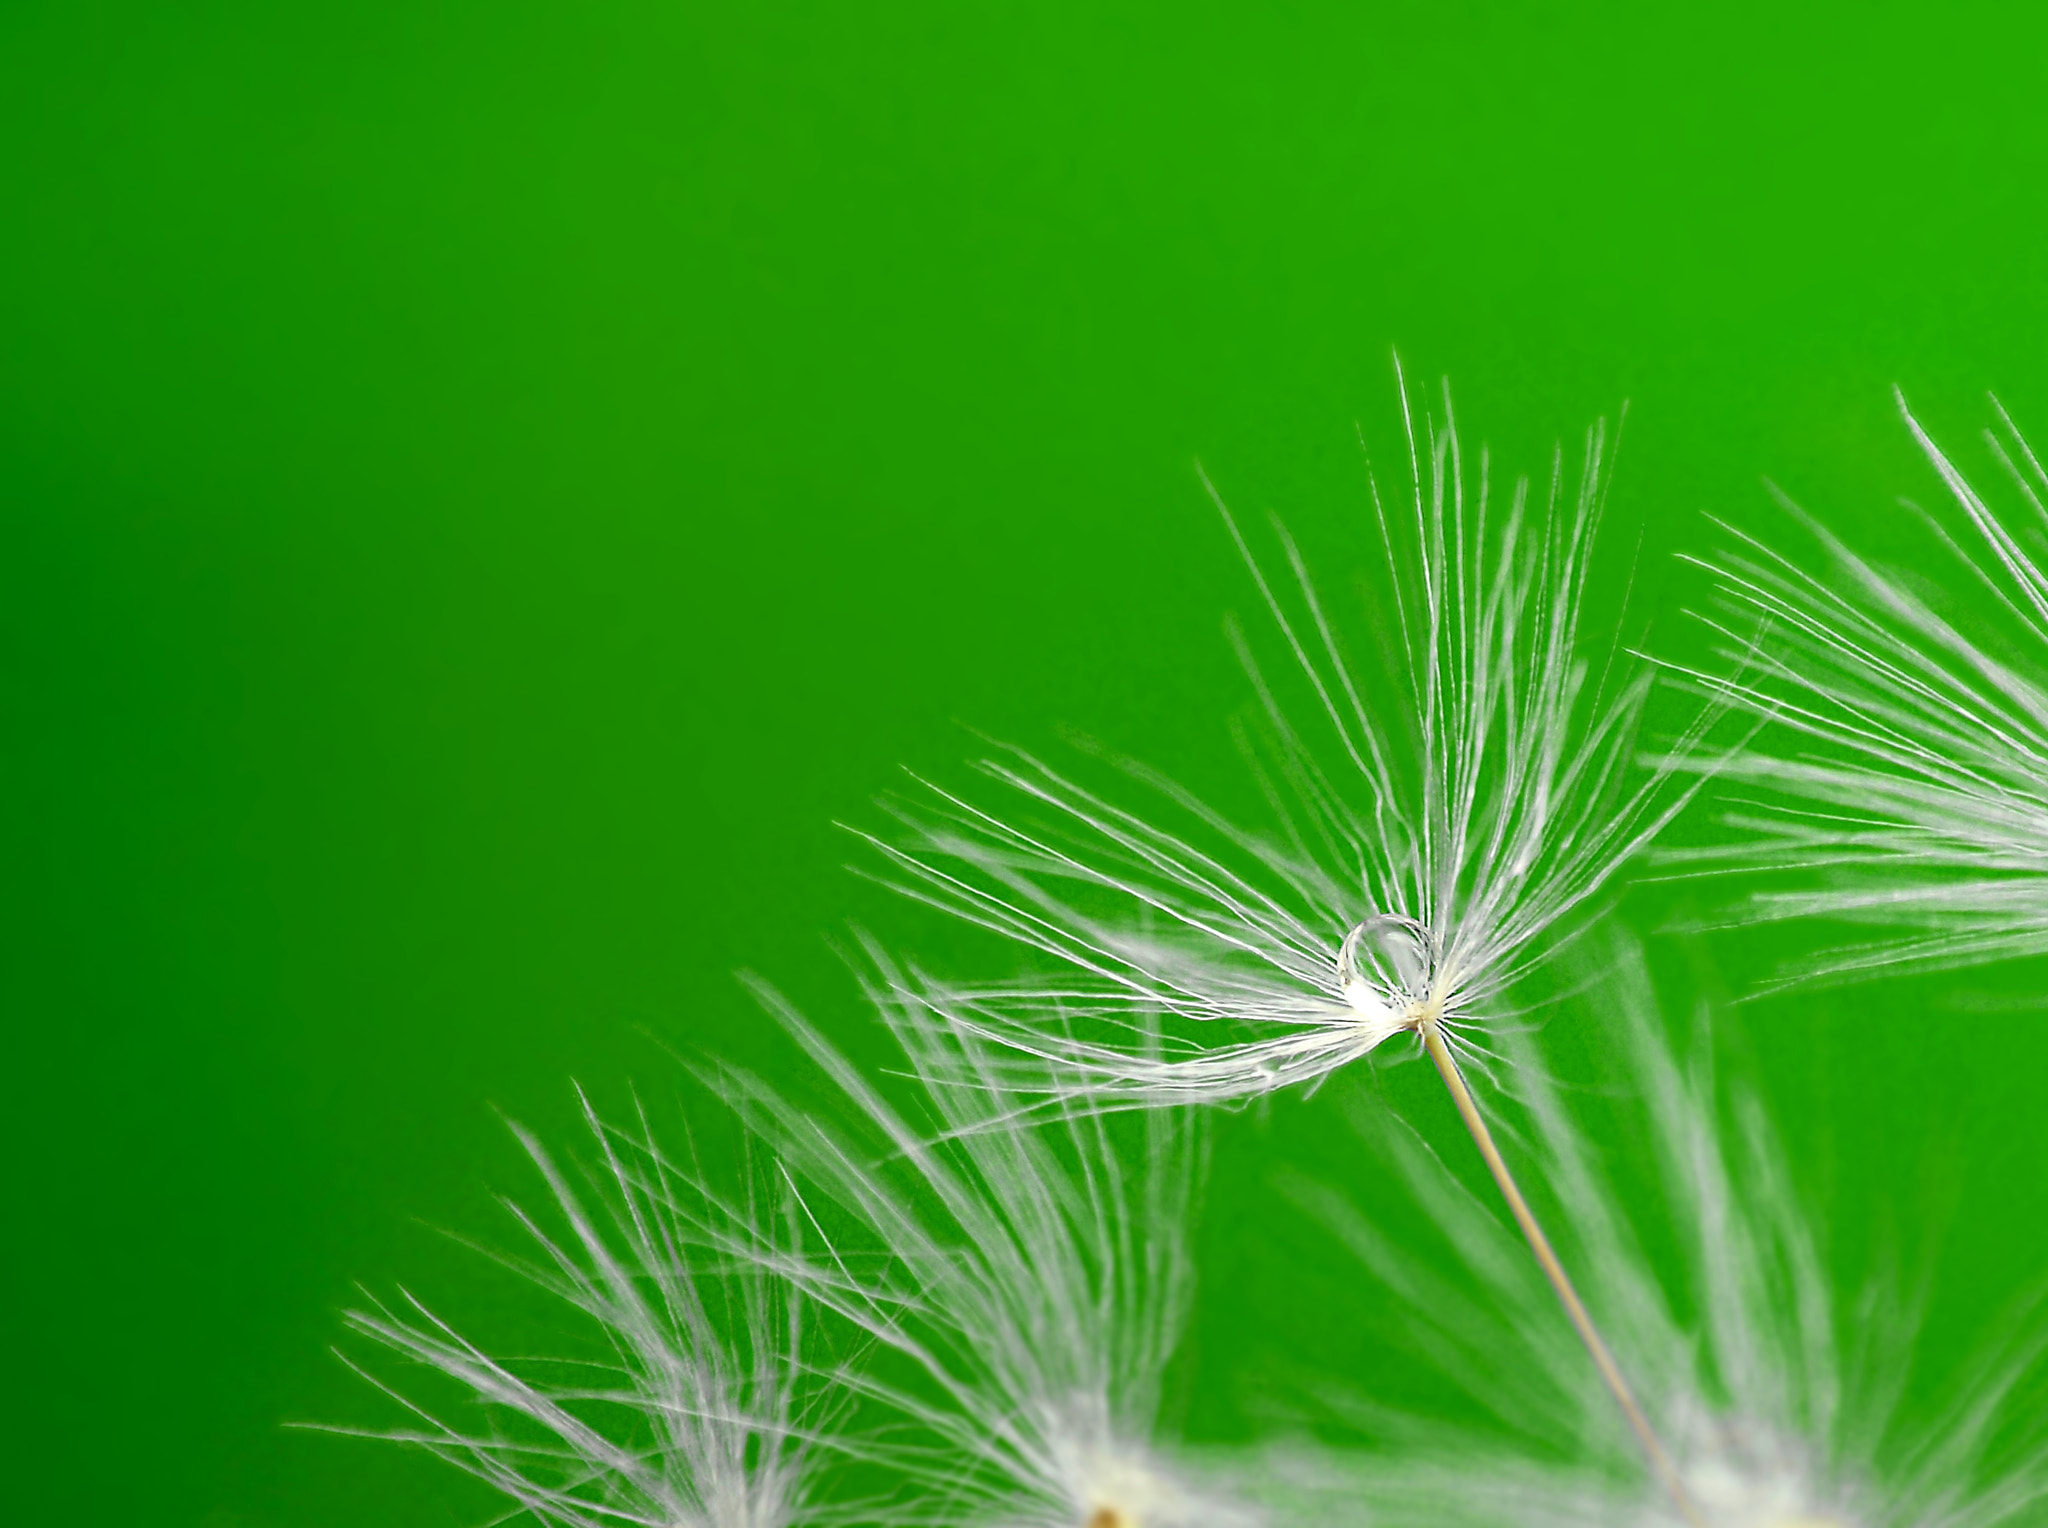 Photograph Verde - Green by Ana MD on 500px